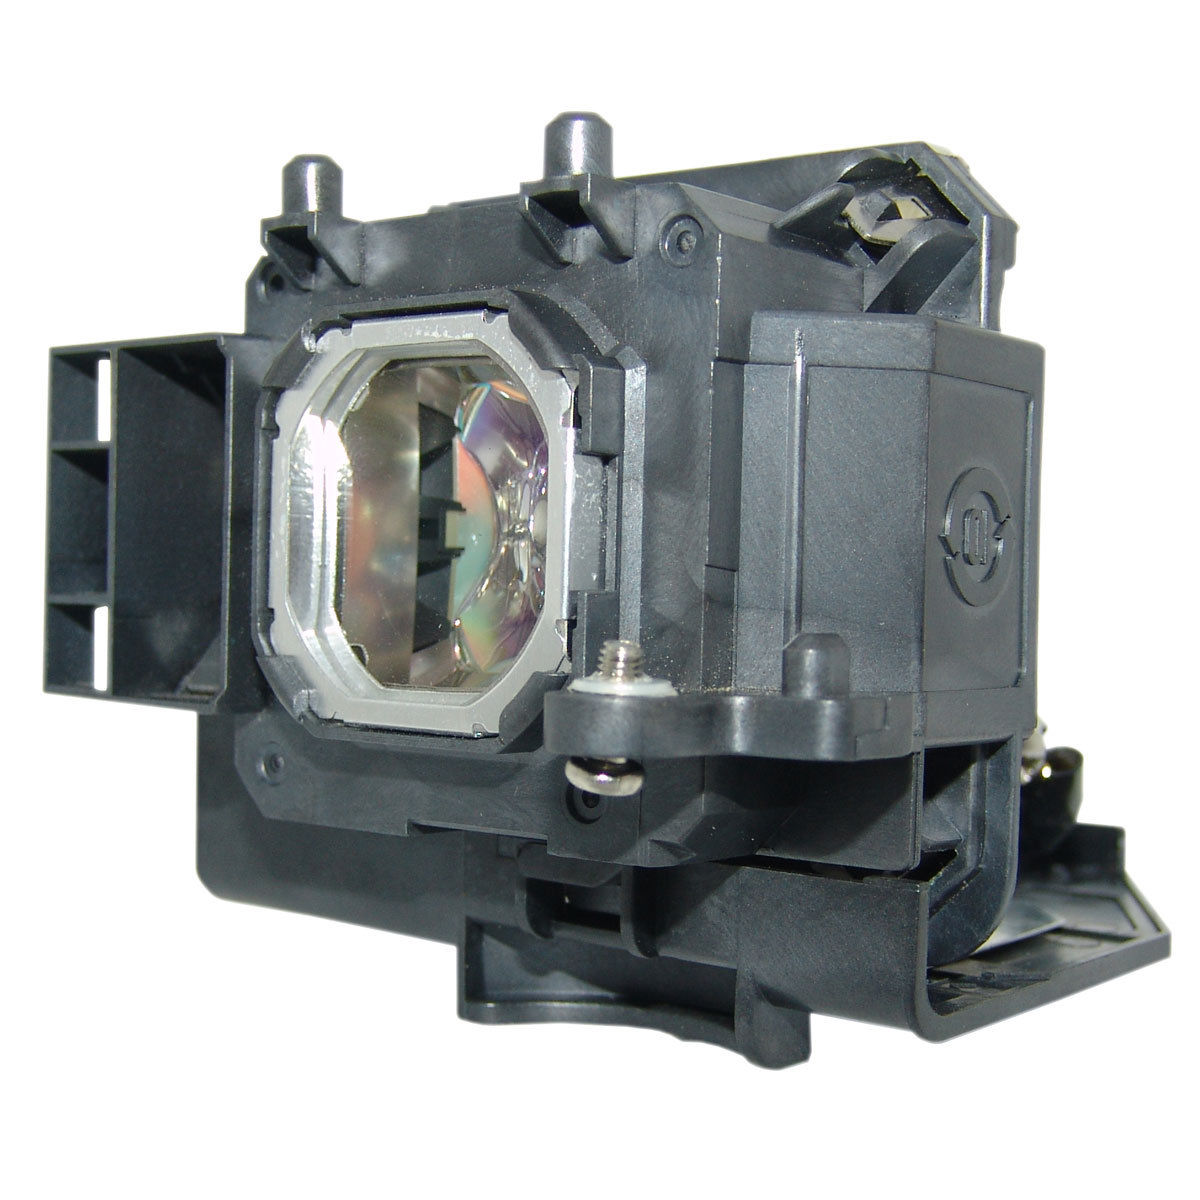 Projector Lamp Bulb NP15LP NP-15LP 6003121 for NEC M260X M260W M300X M260XS M230X M271W M271X M311X with housing